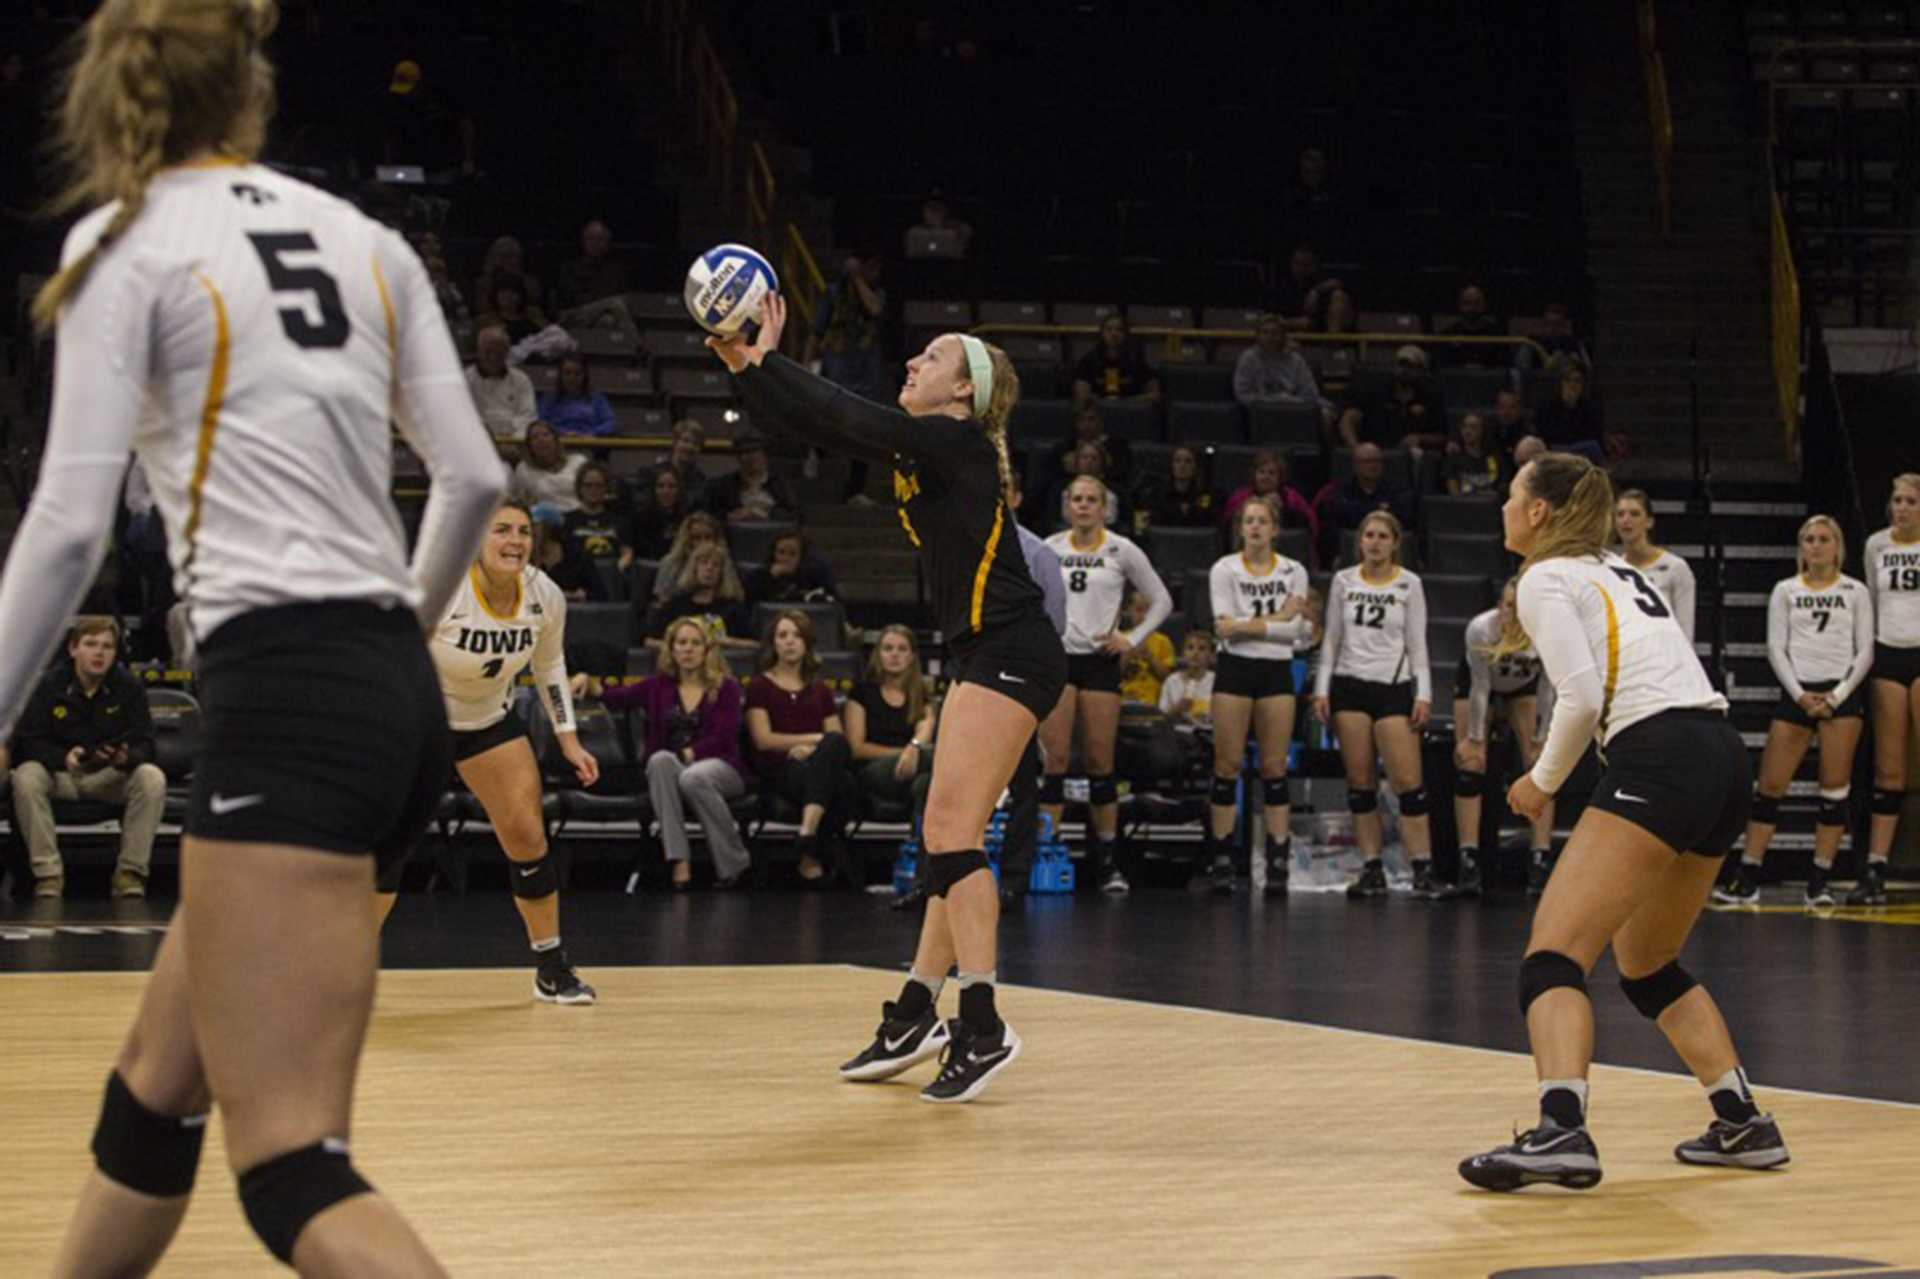 Iowa volleyball winds up one step closer to goal